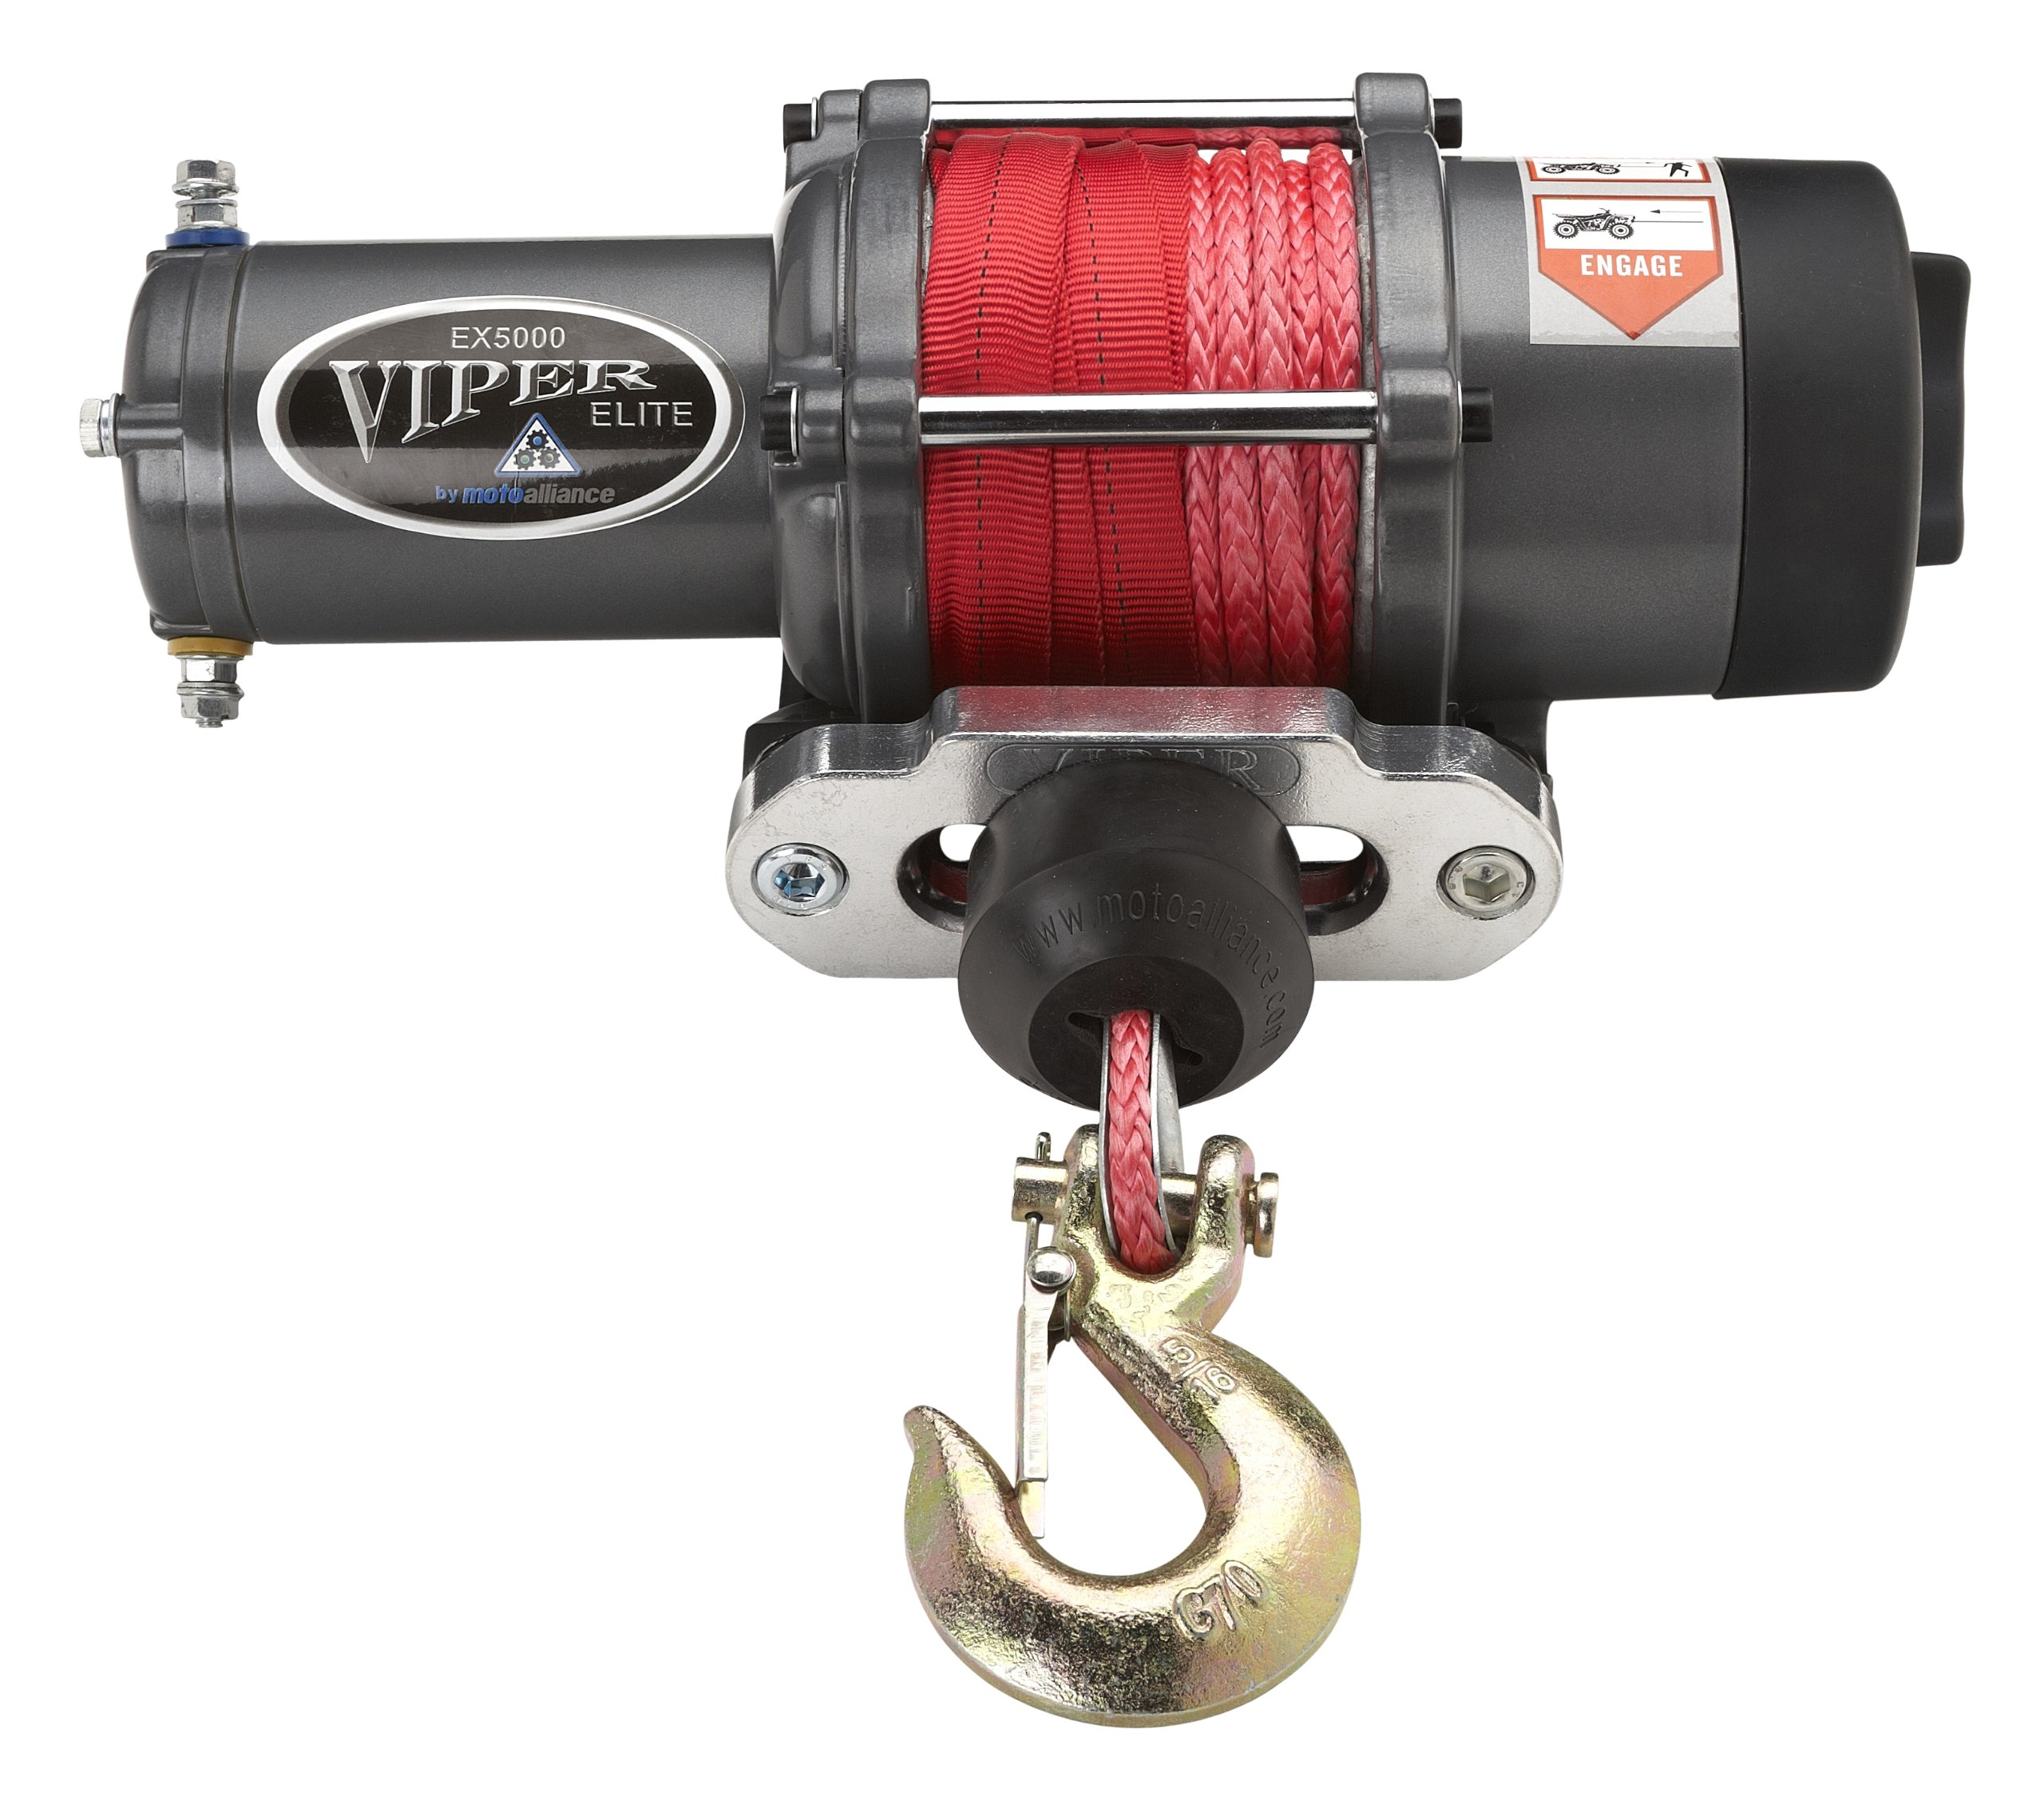 VIPER Elite 6000lb ATV/UTV Winch with 40 feet RED AmSteel-Blue Synthetic Rope